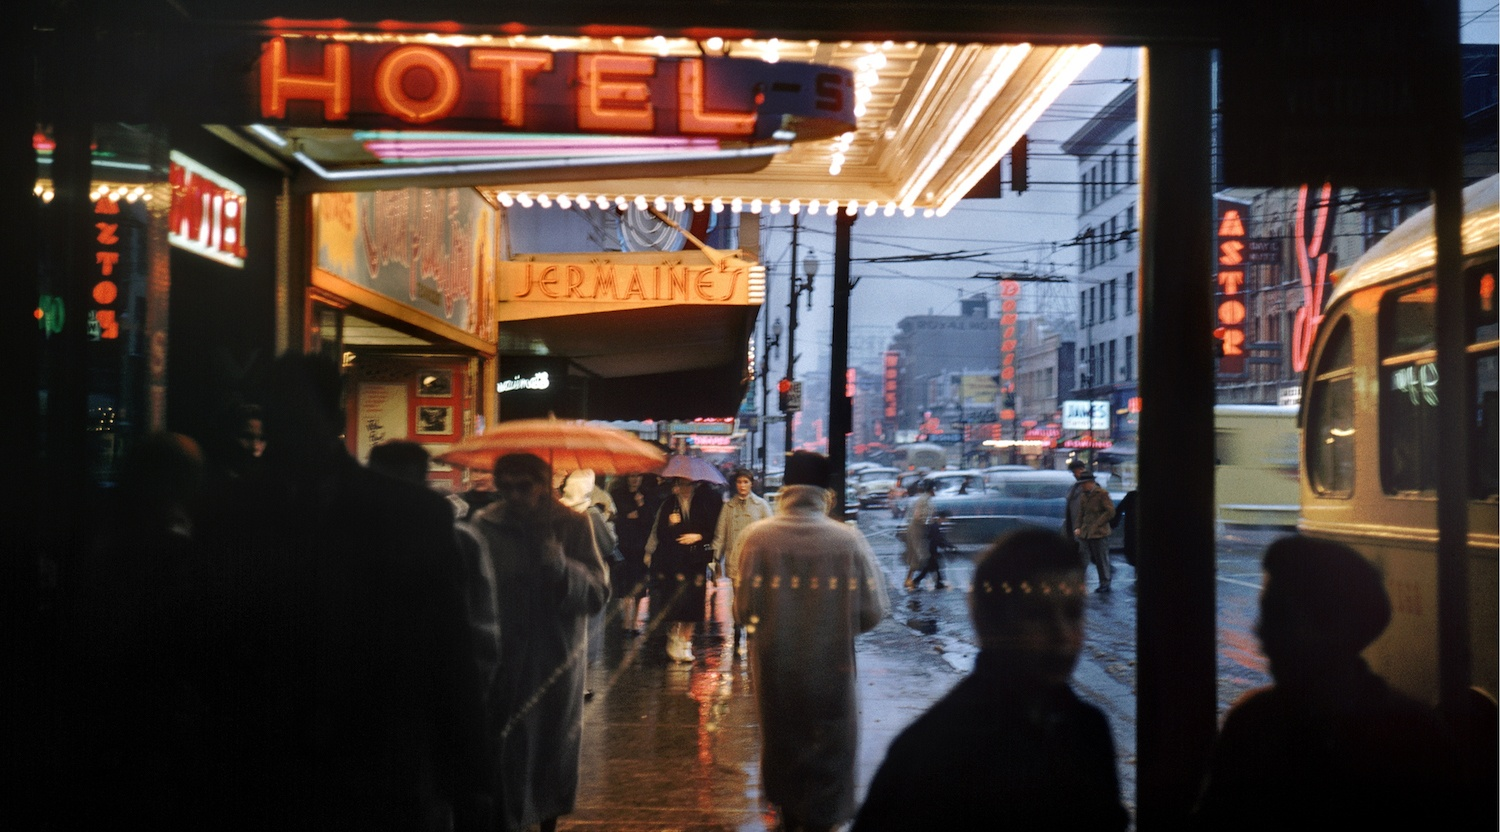 Granville street at night by fred herzog 1959 fred herzog equinox gallery